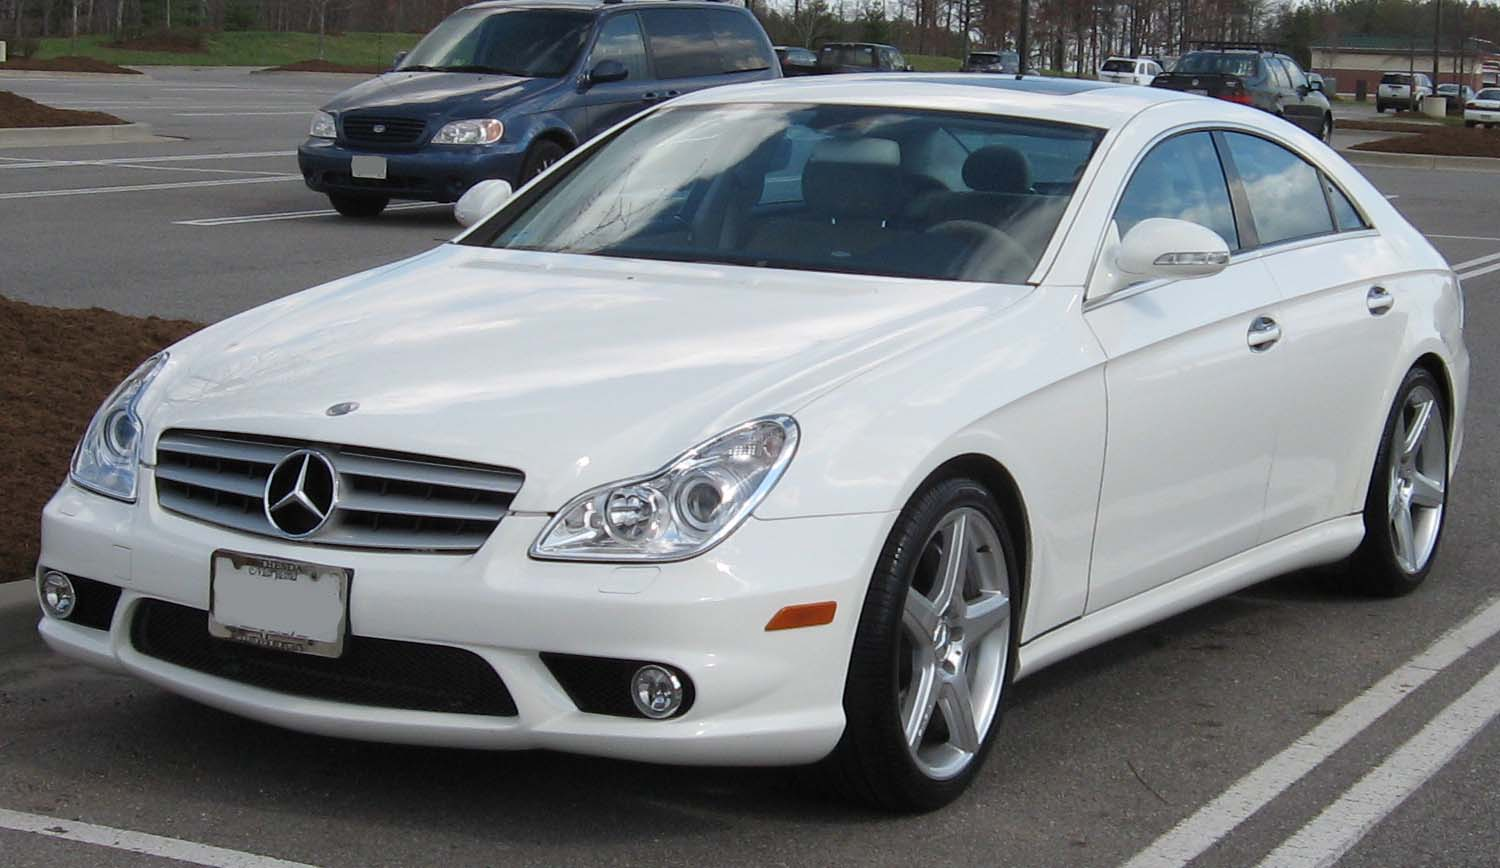 Mercedes benz cls 55 amg technical details history for Parts mercedes benz